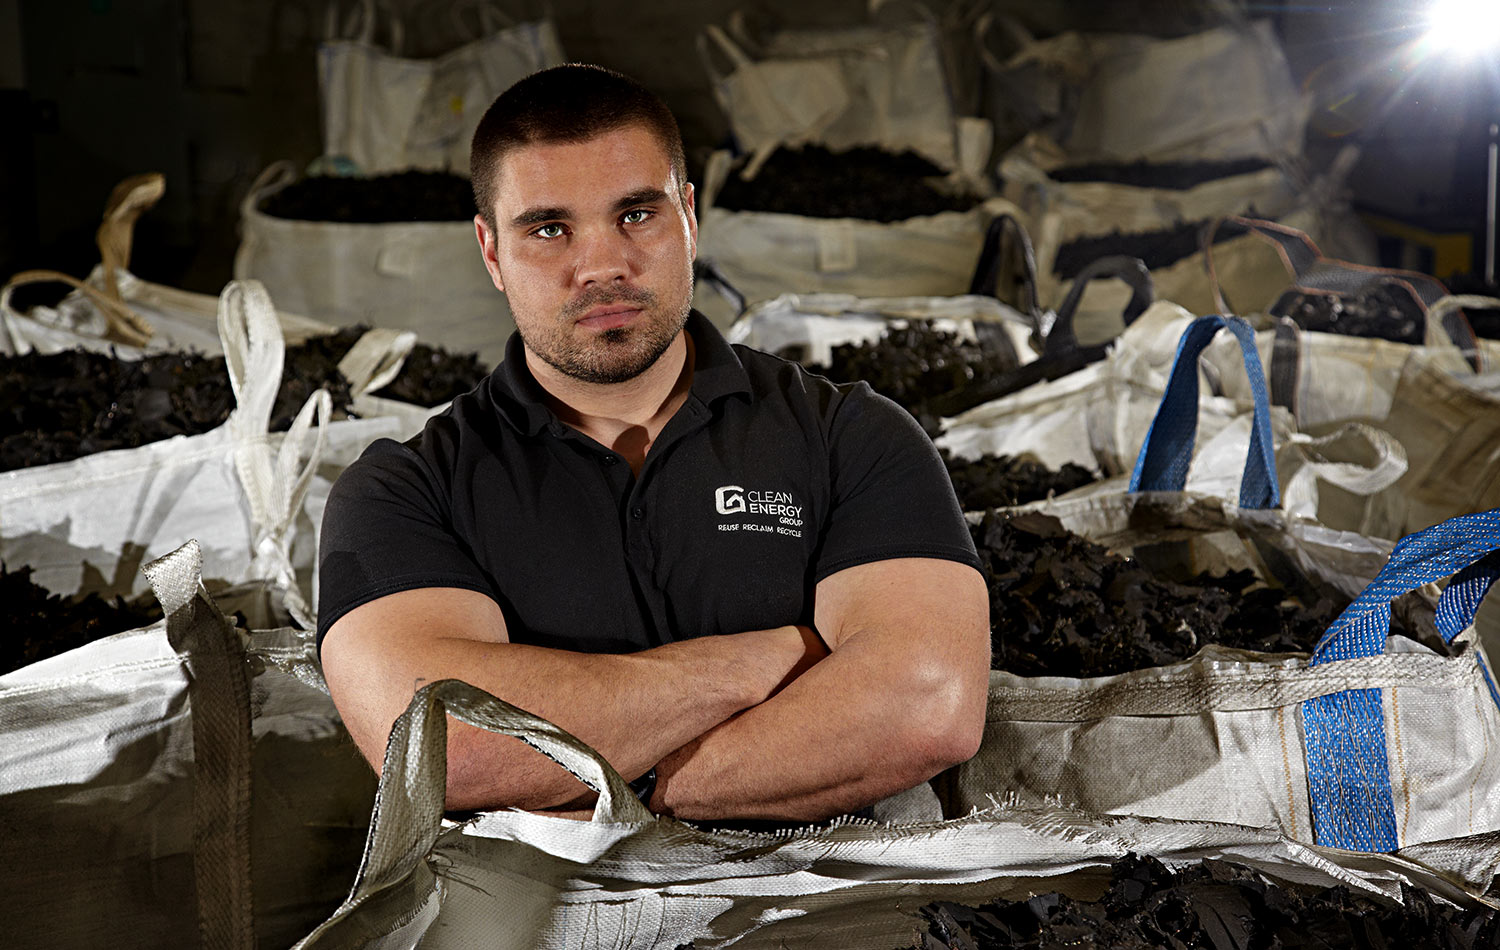 Clean Energy Group Owner - recycler of old tyres